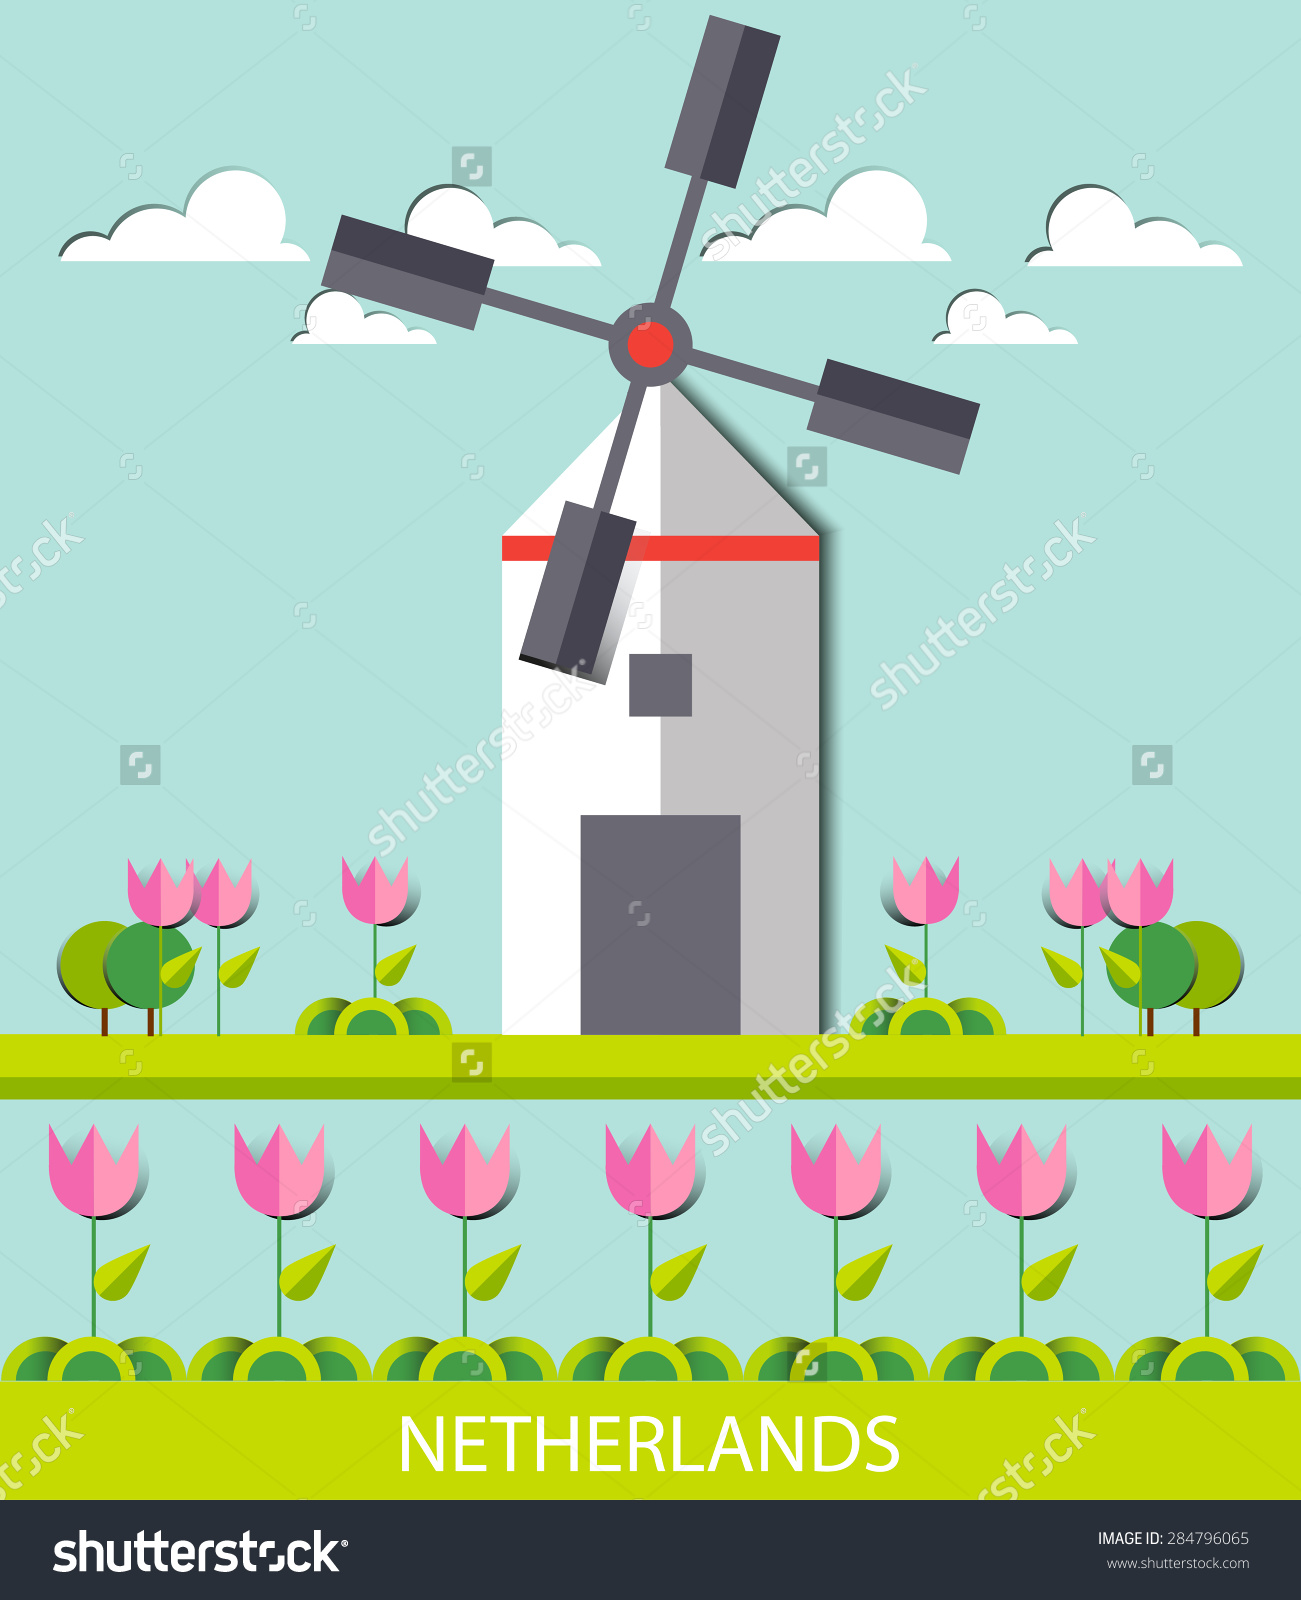 Netherlands Landscape, Amsterdam, Windmill, Destination, Travel.